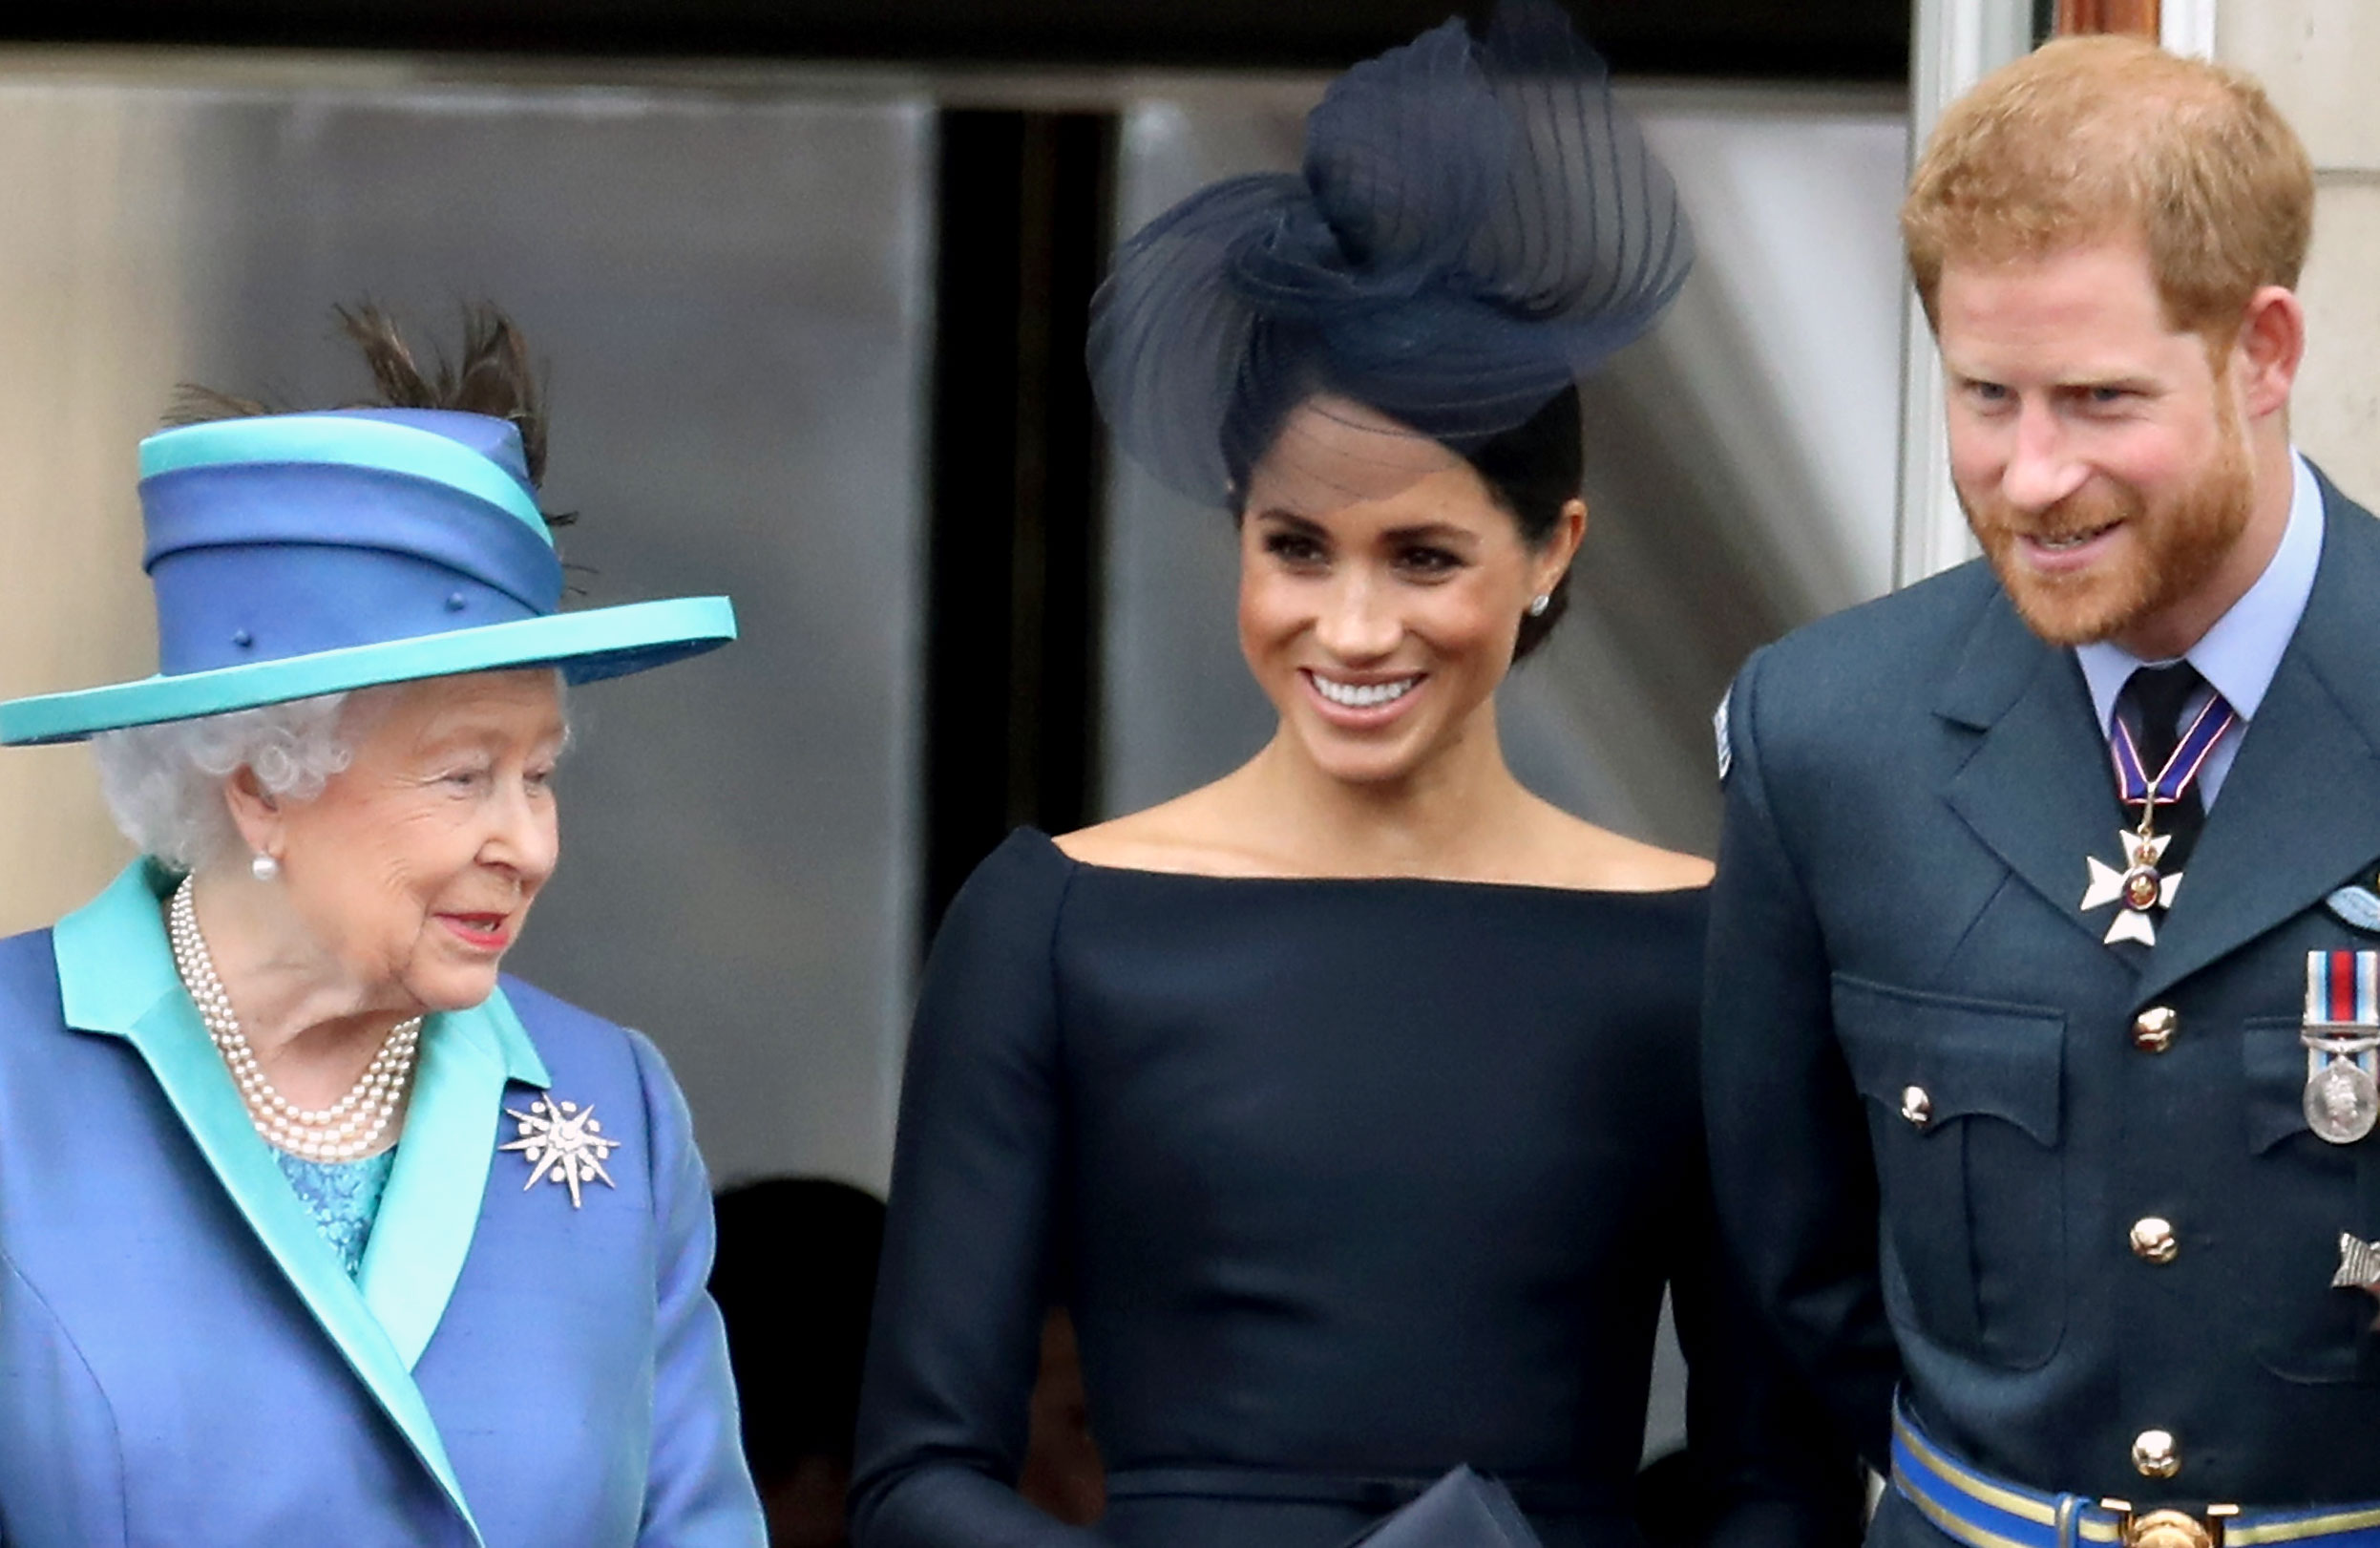 Prince Harry Duchess Meghan Wish Queen Elizabeth Happy 93rd Birthday - Queen Elizabeth II, Meghan, Duchess of Sussex, Prince Harry, Duke of Sussex watch the RAF flypast on the balcony of Buckingham Palace, as members of the Royal Family attend events to mark the centenary of the RAF on July 10, 2018 in London, England.